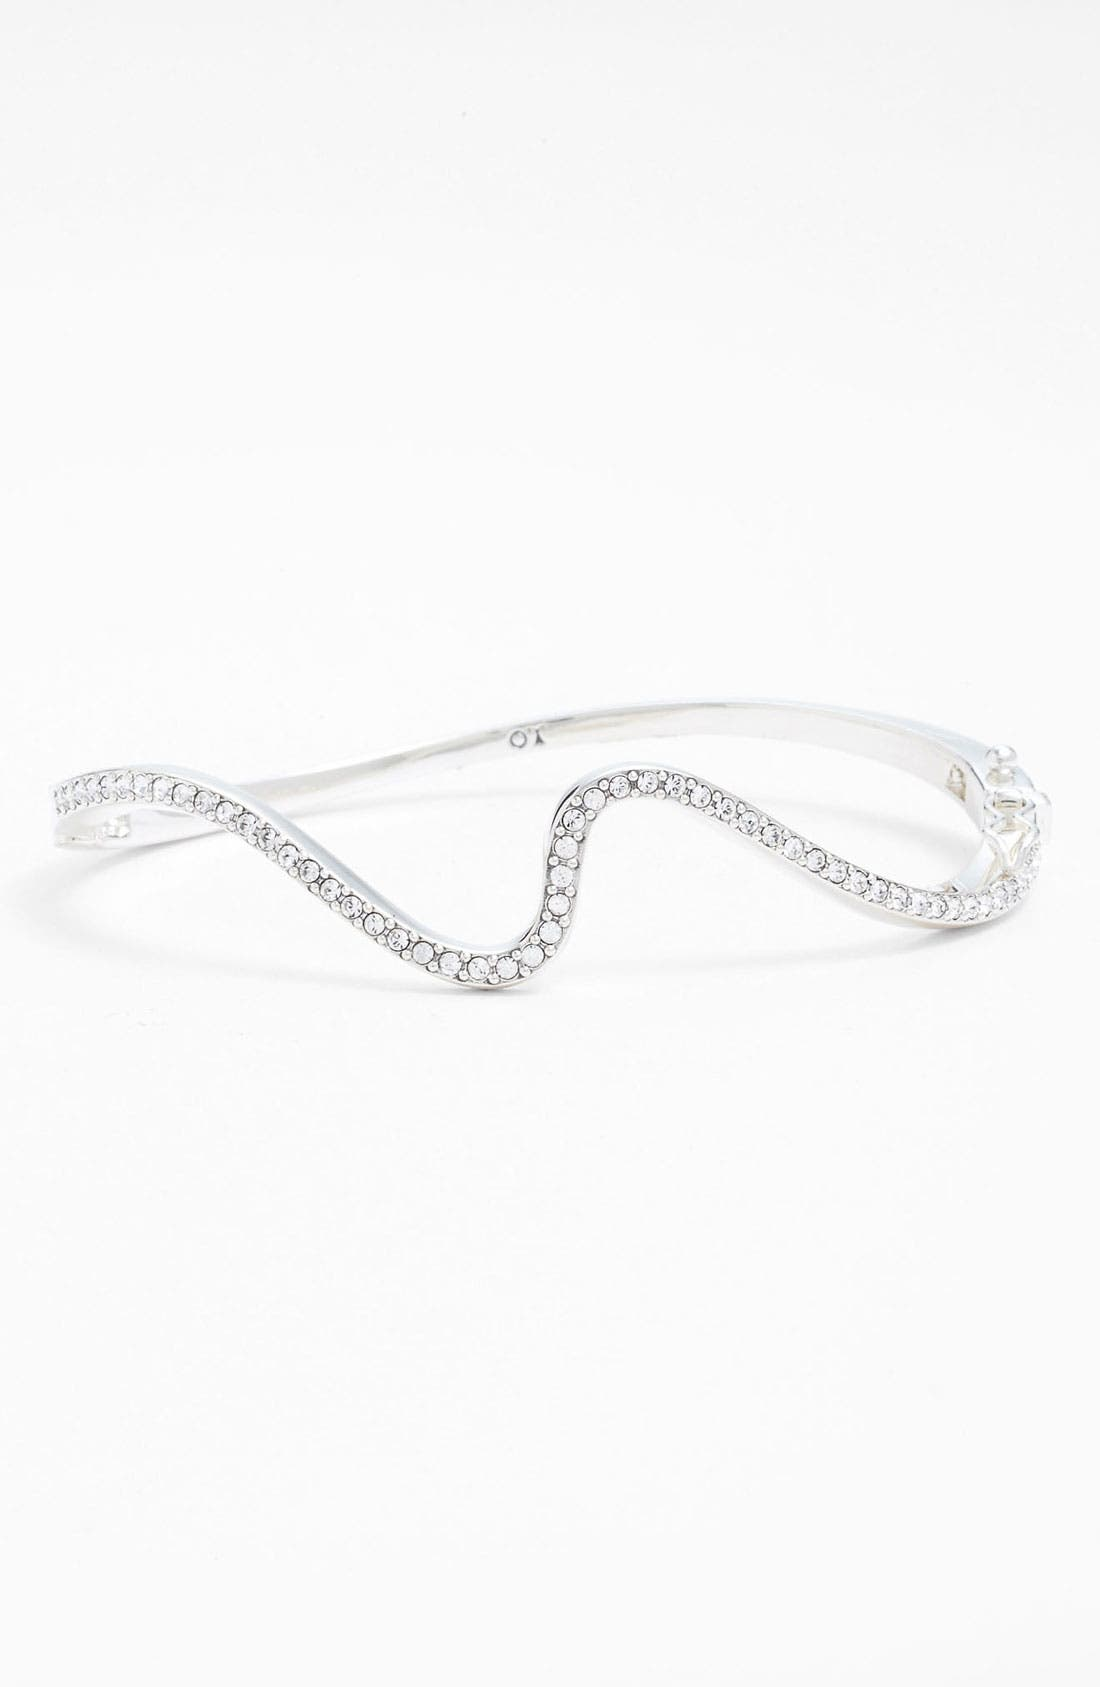 Alternate Image 1 Selected - Judith Jack 'Fluidity' Wavy Bracelet